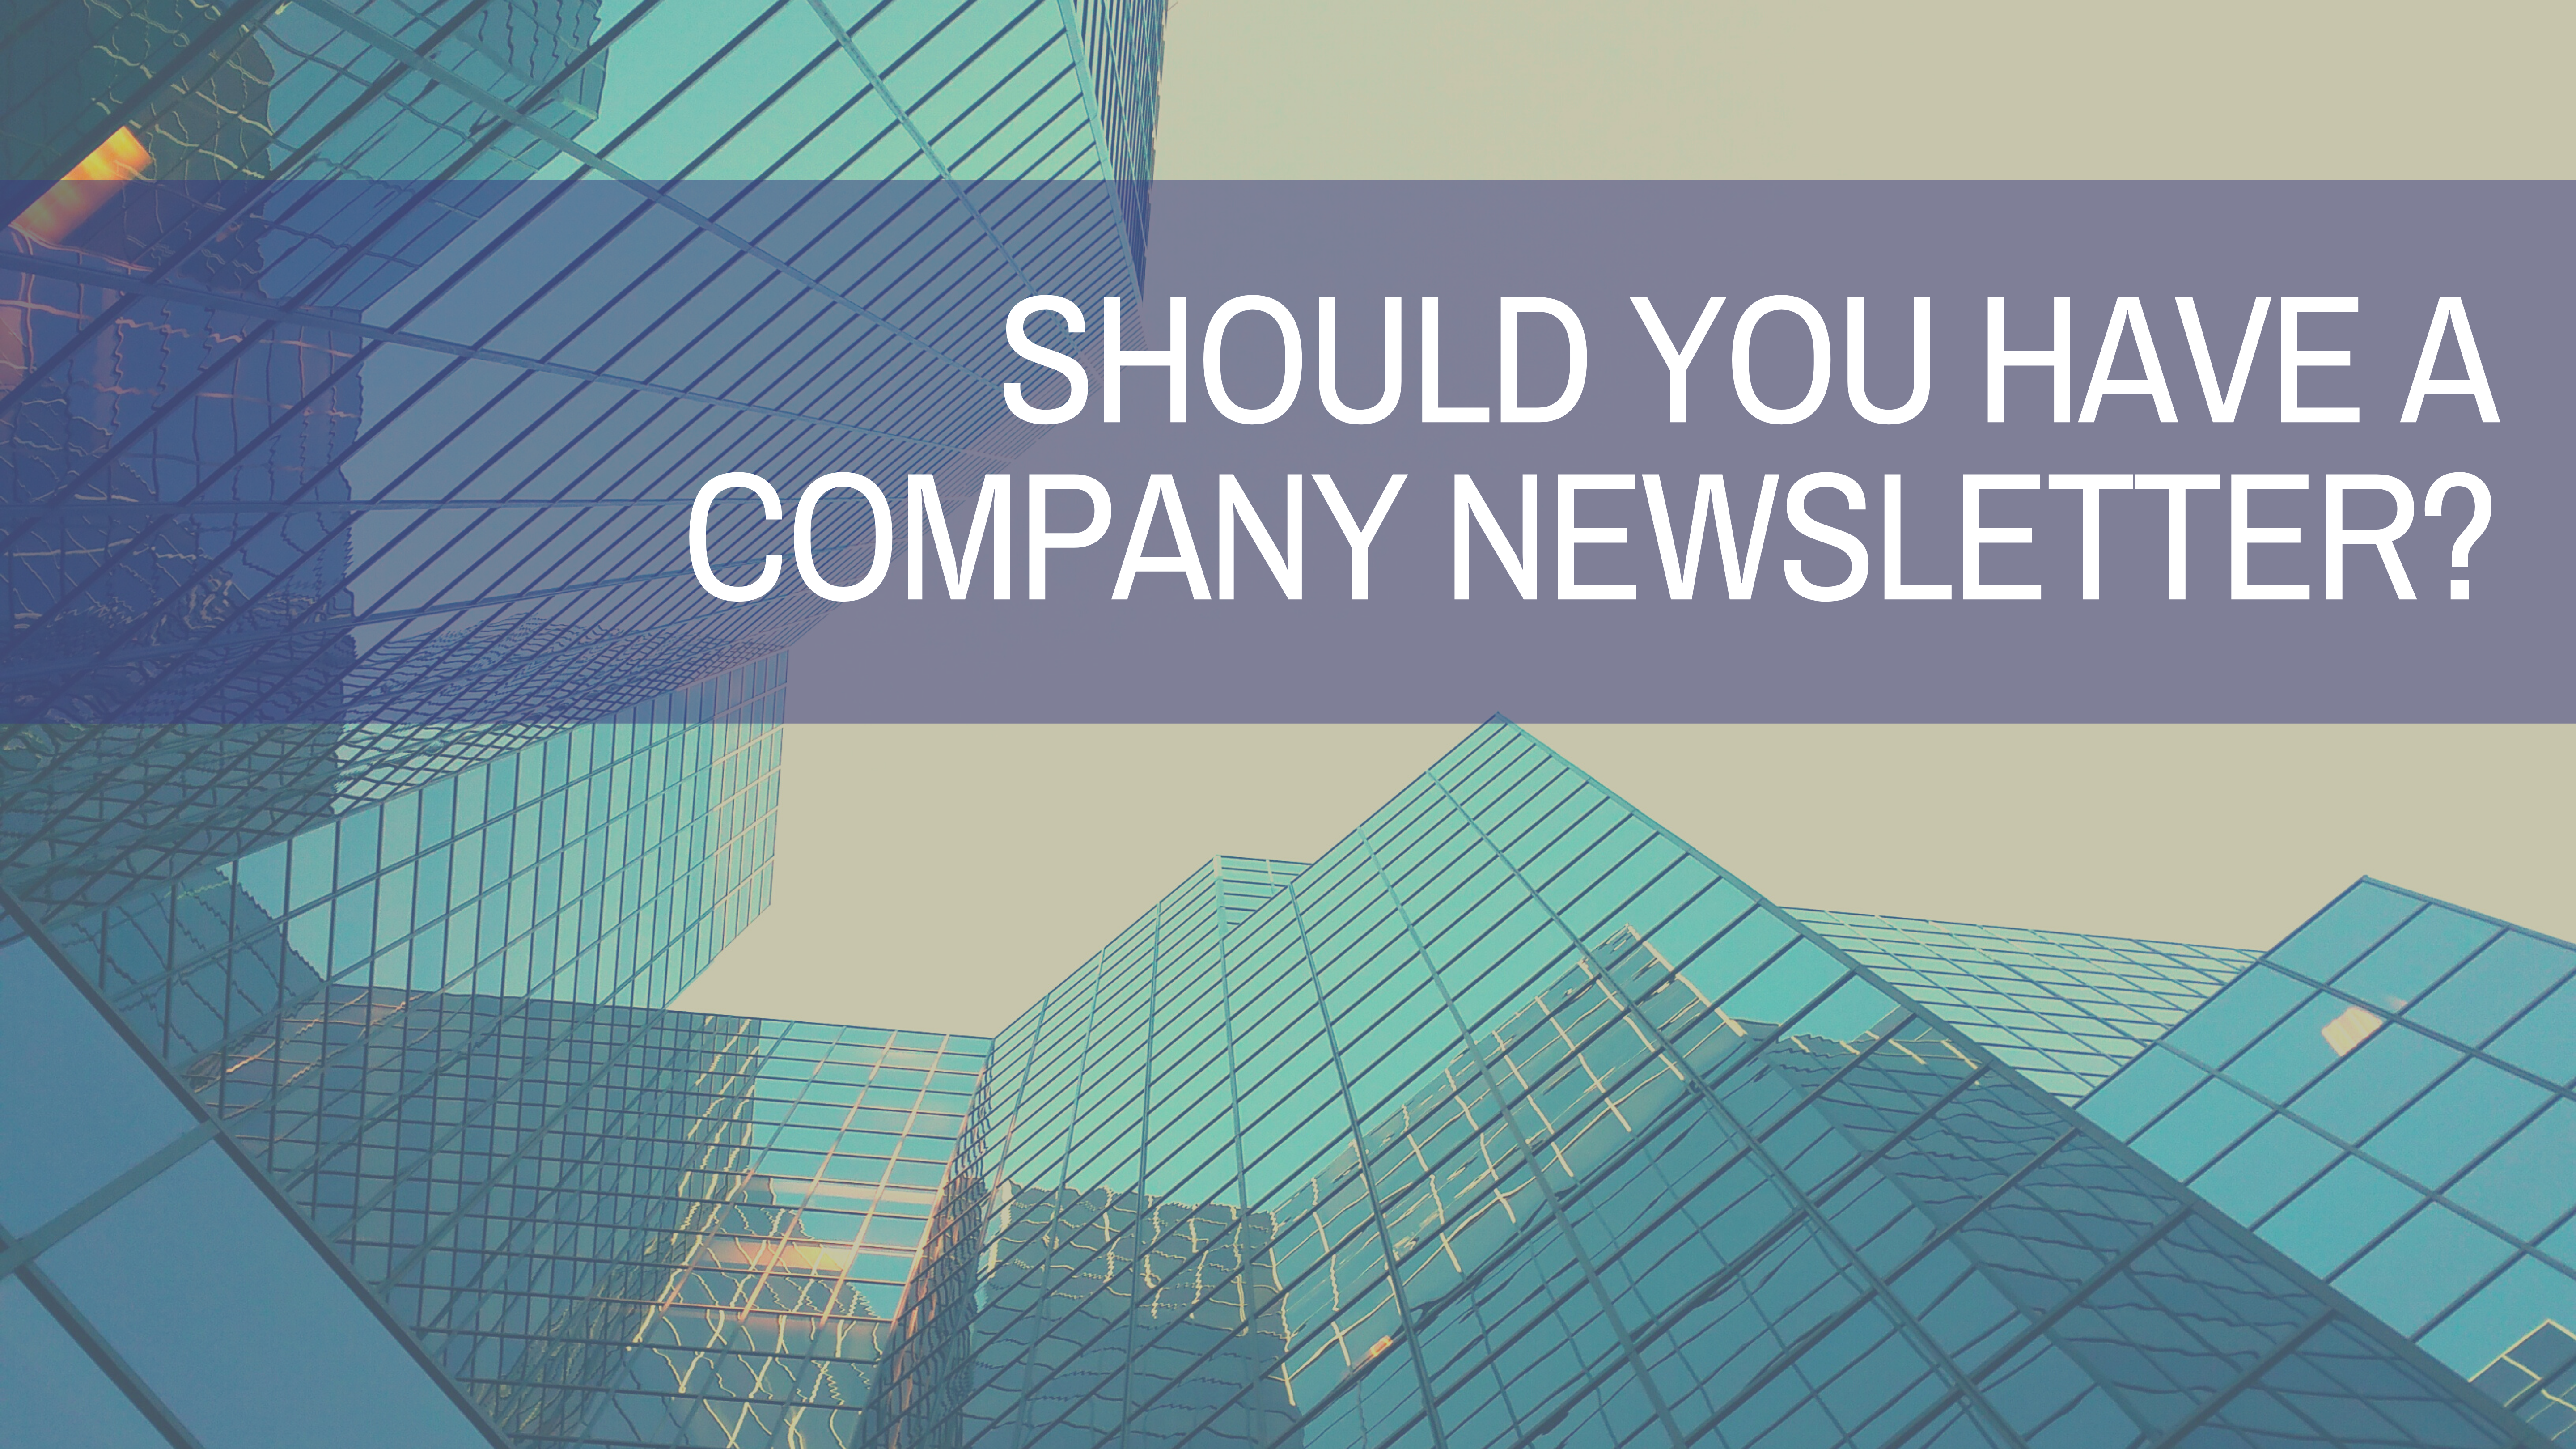 Should You Have a Company Newsletter?